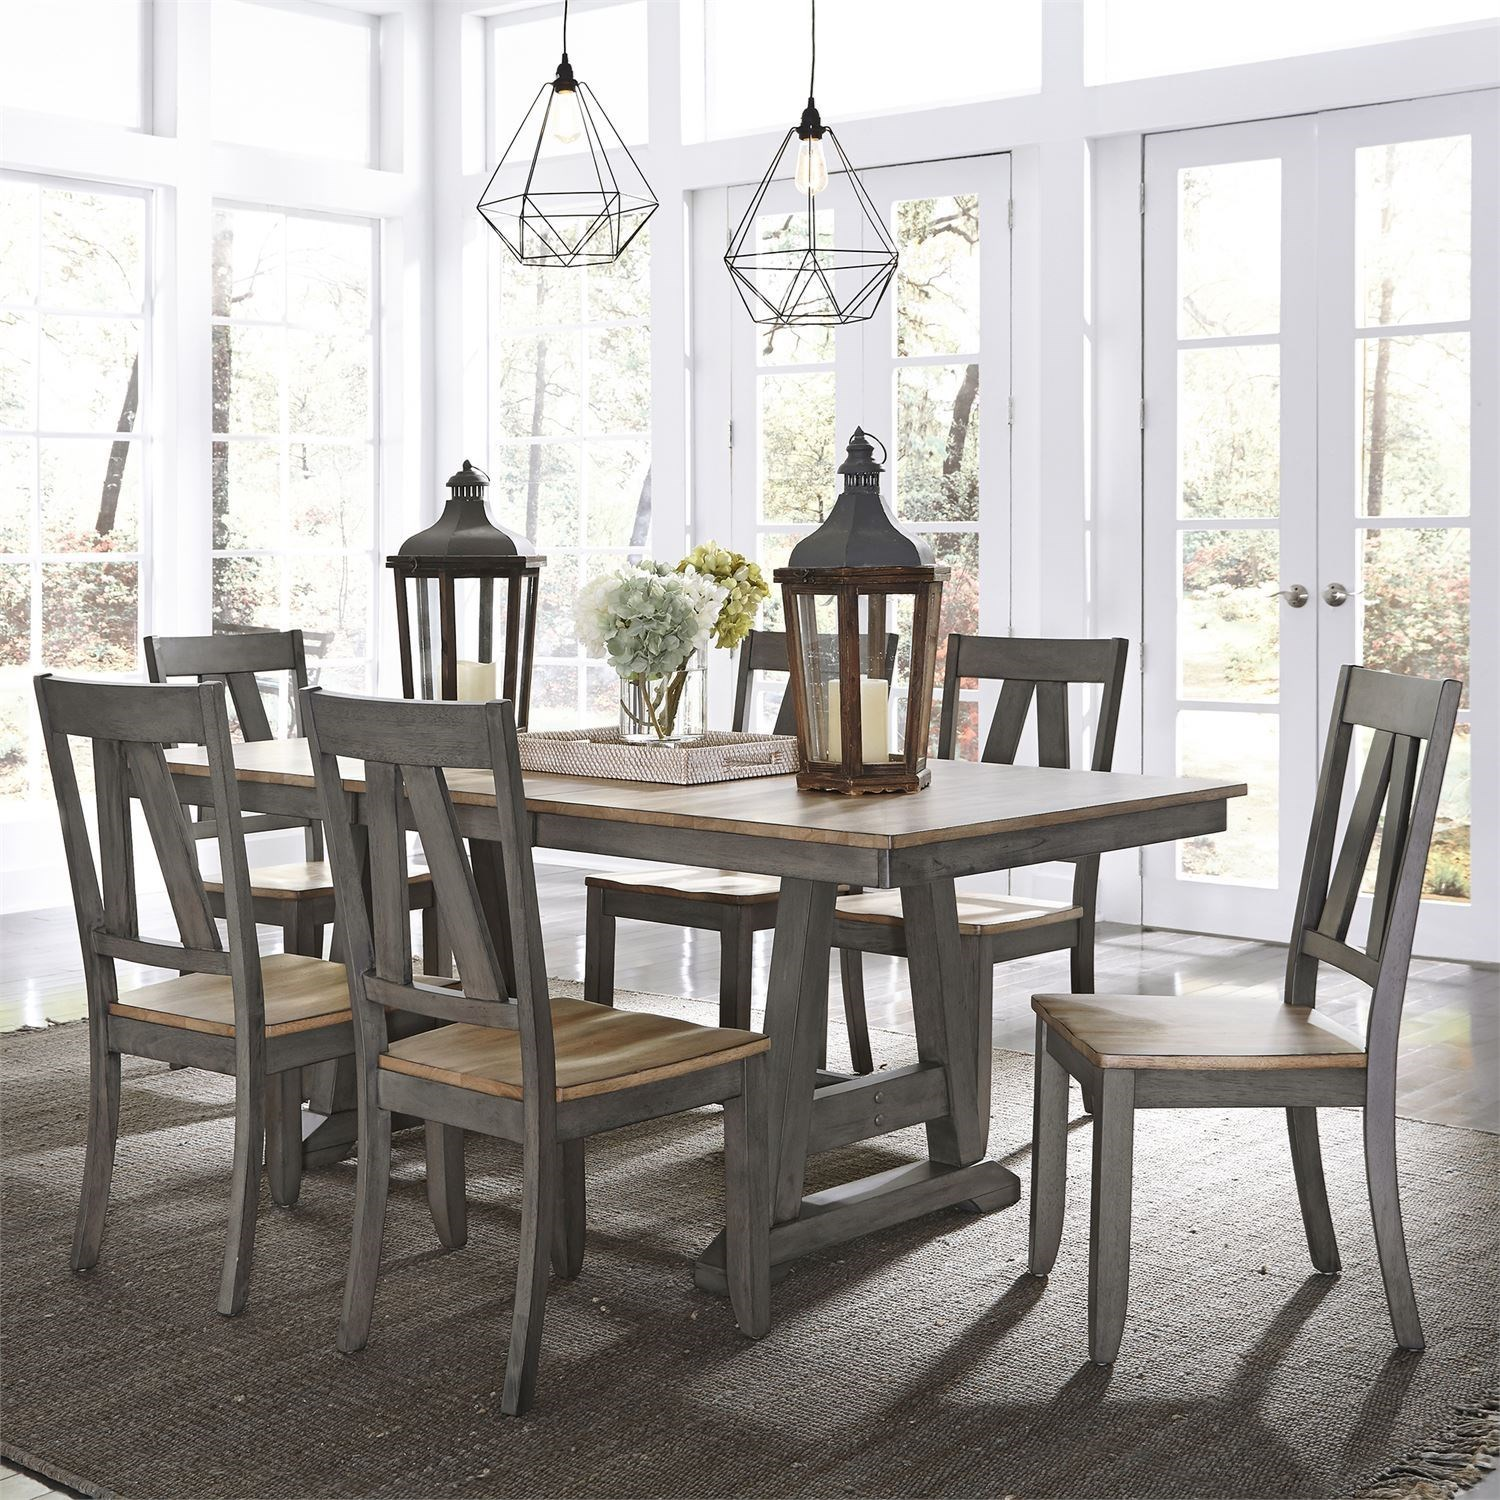 Lindsey Farm 7-Piece Trestle Table Set by Liberty Furniture at Johnny Janosik